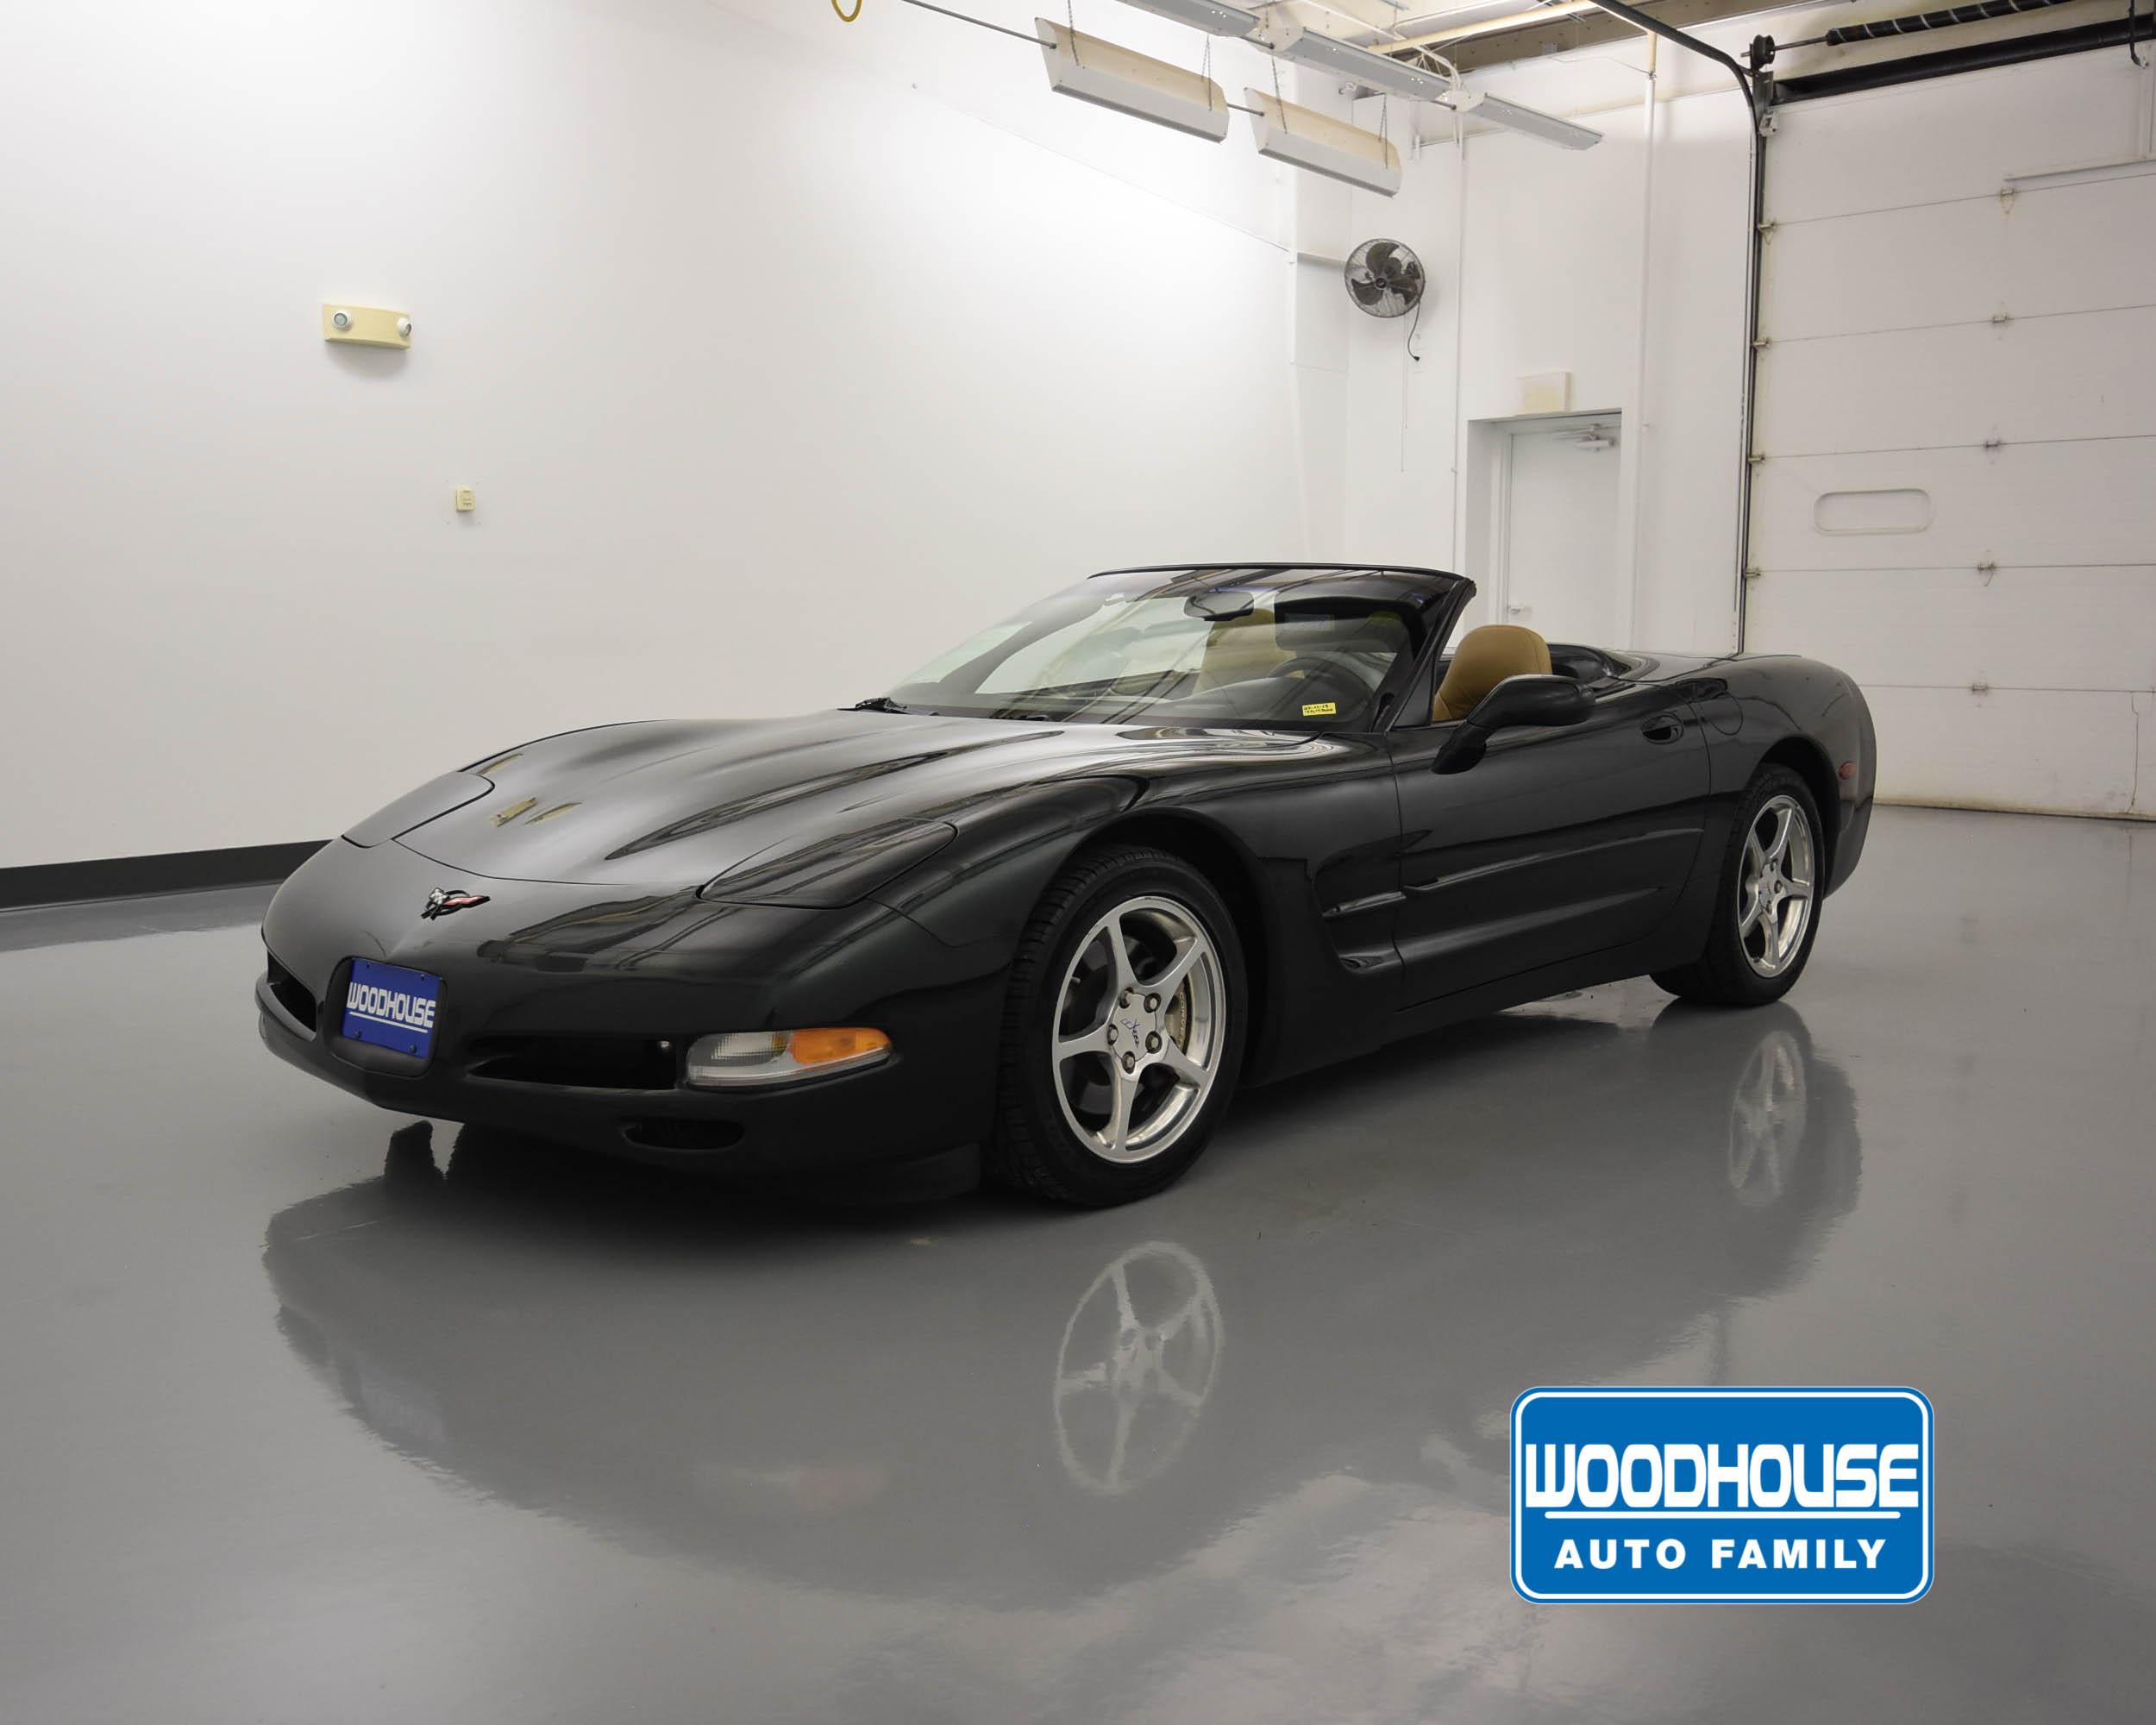 Woodhouse Used 2000 Chevrolet Corvette For Sale Ford Blair